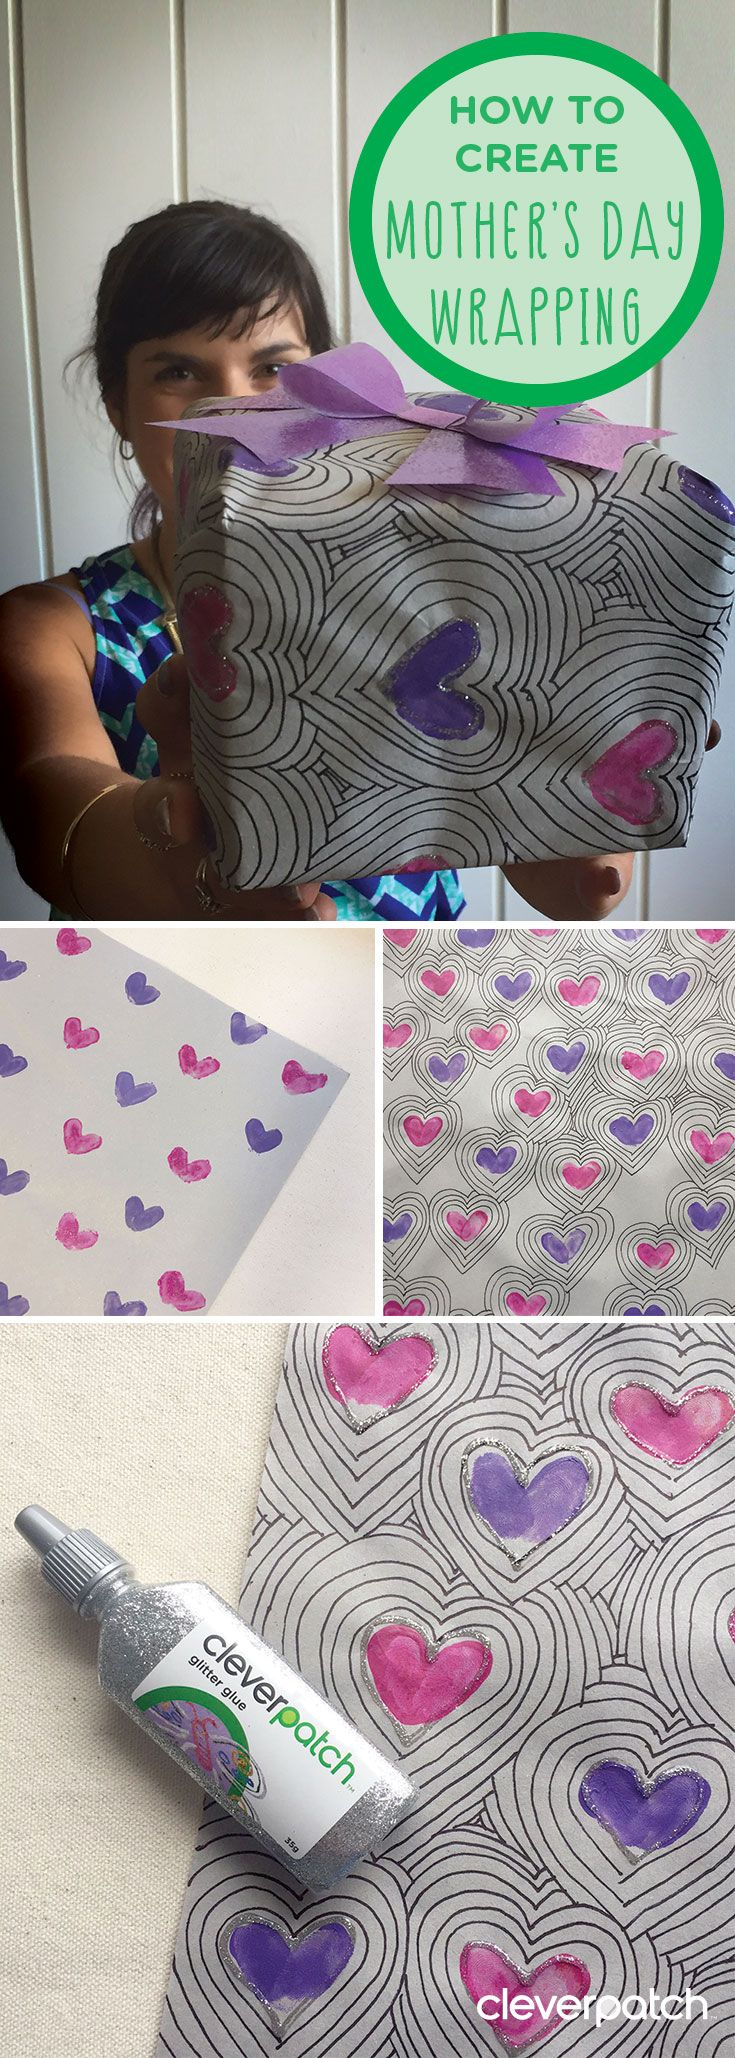 DIY Mother's Day wrapping paper